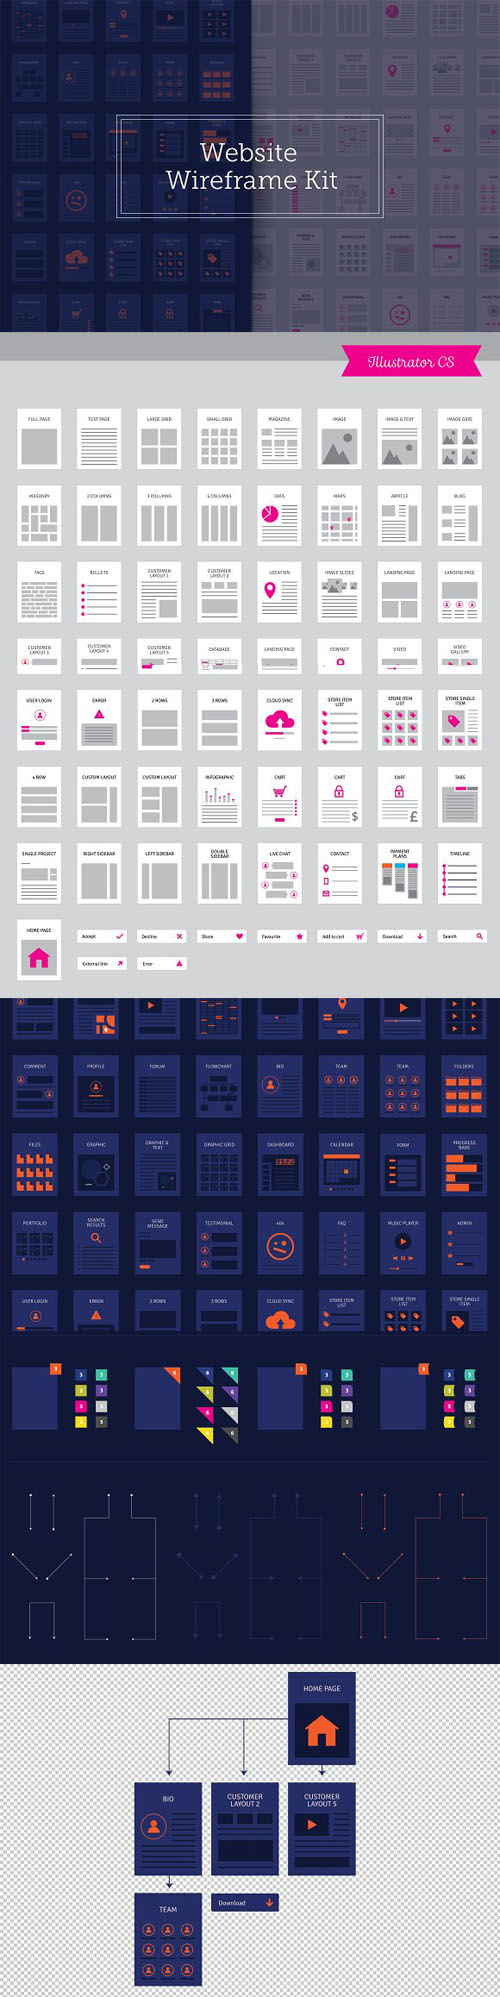 Website Wireframe Kit 1332307